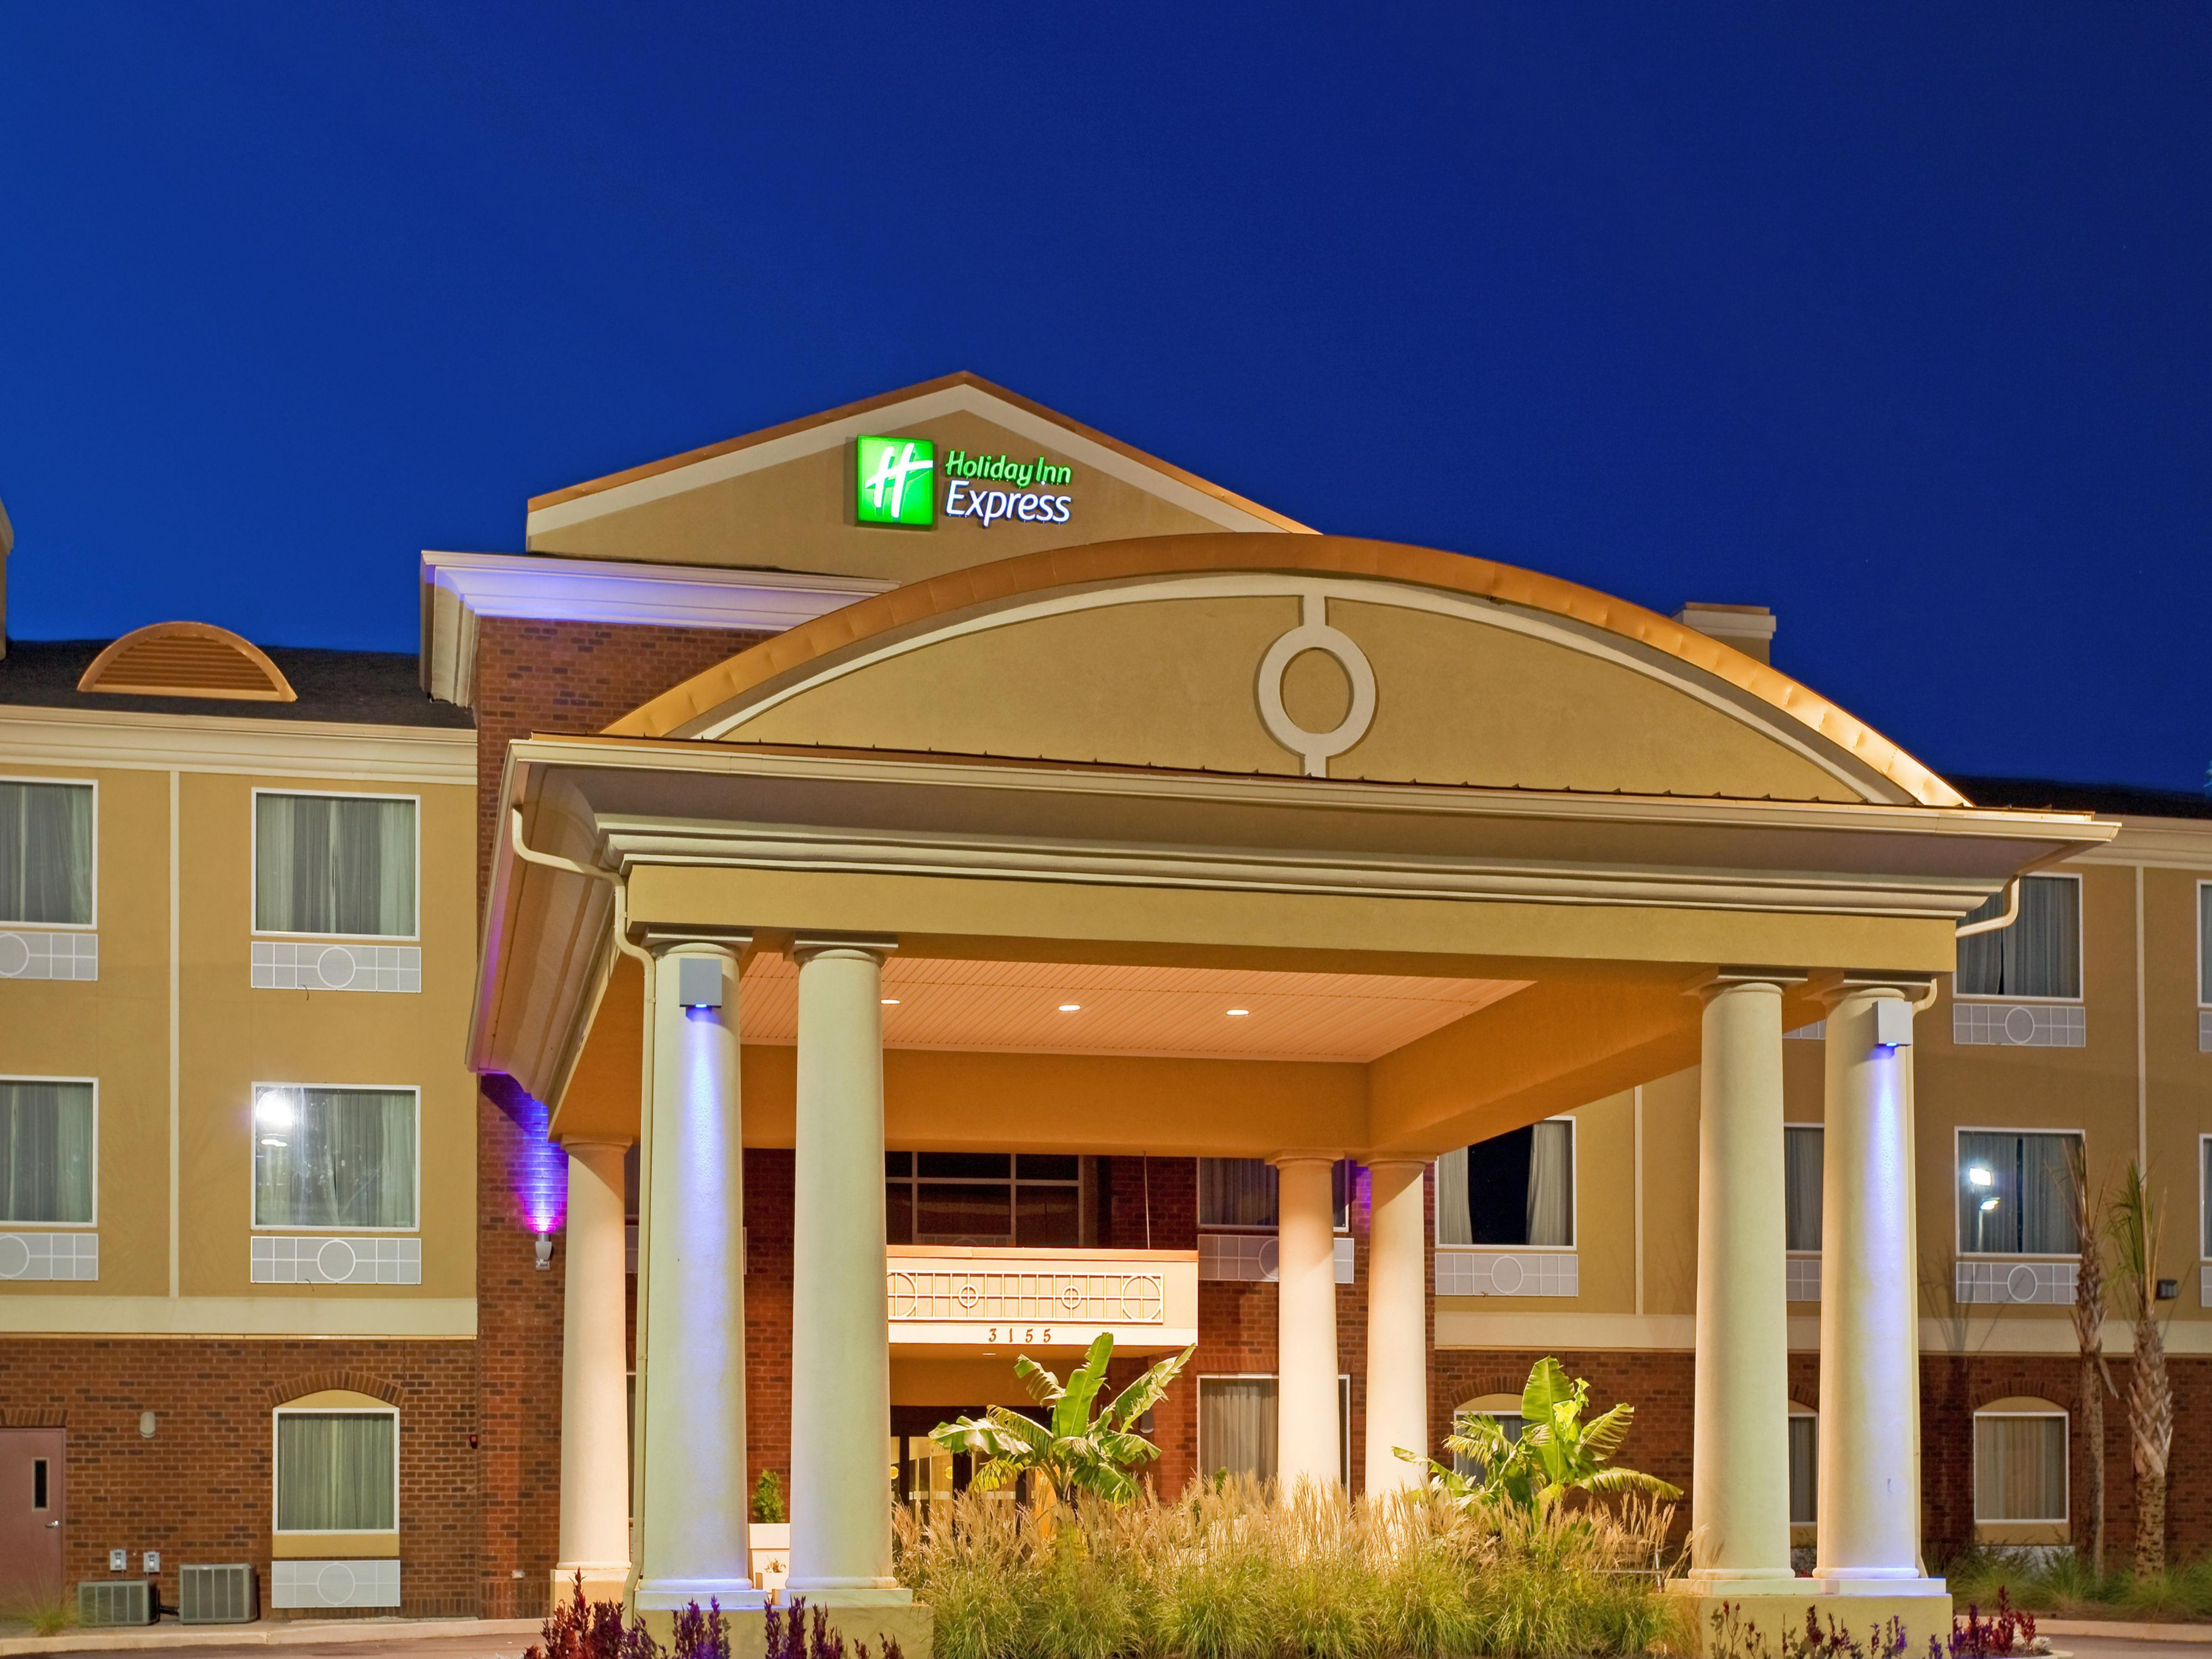 Holiday Inn Express Suites Foley